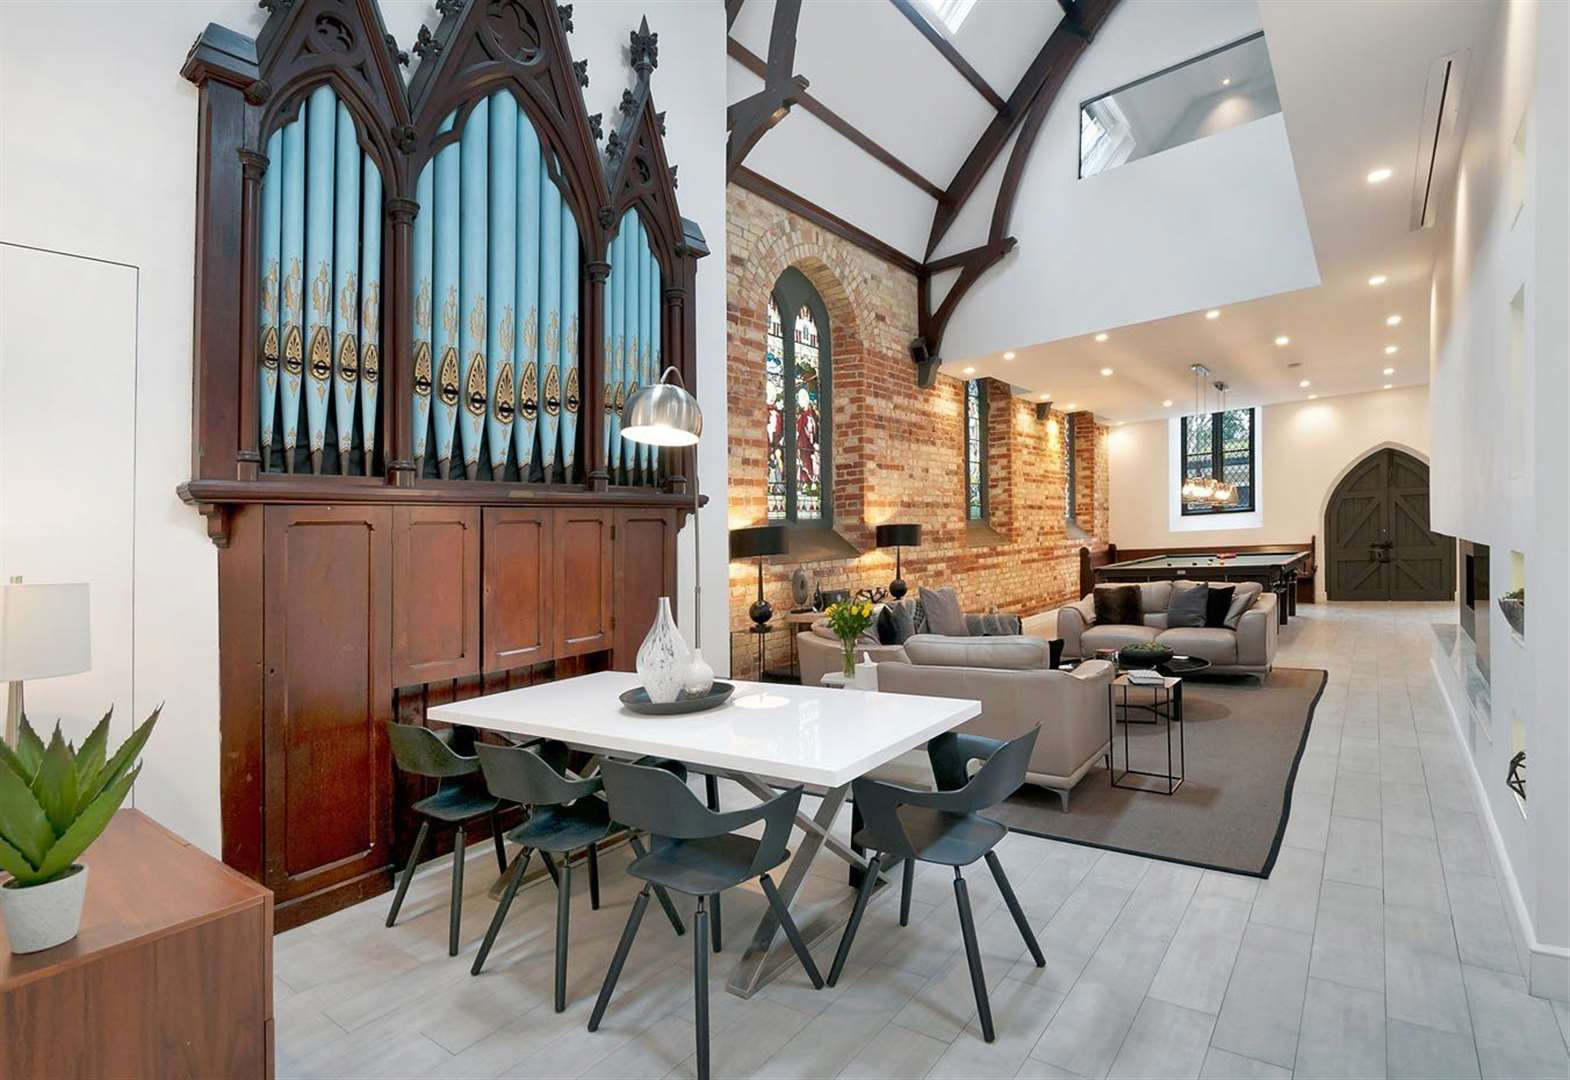 Church transformed into unique home